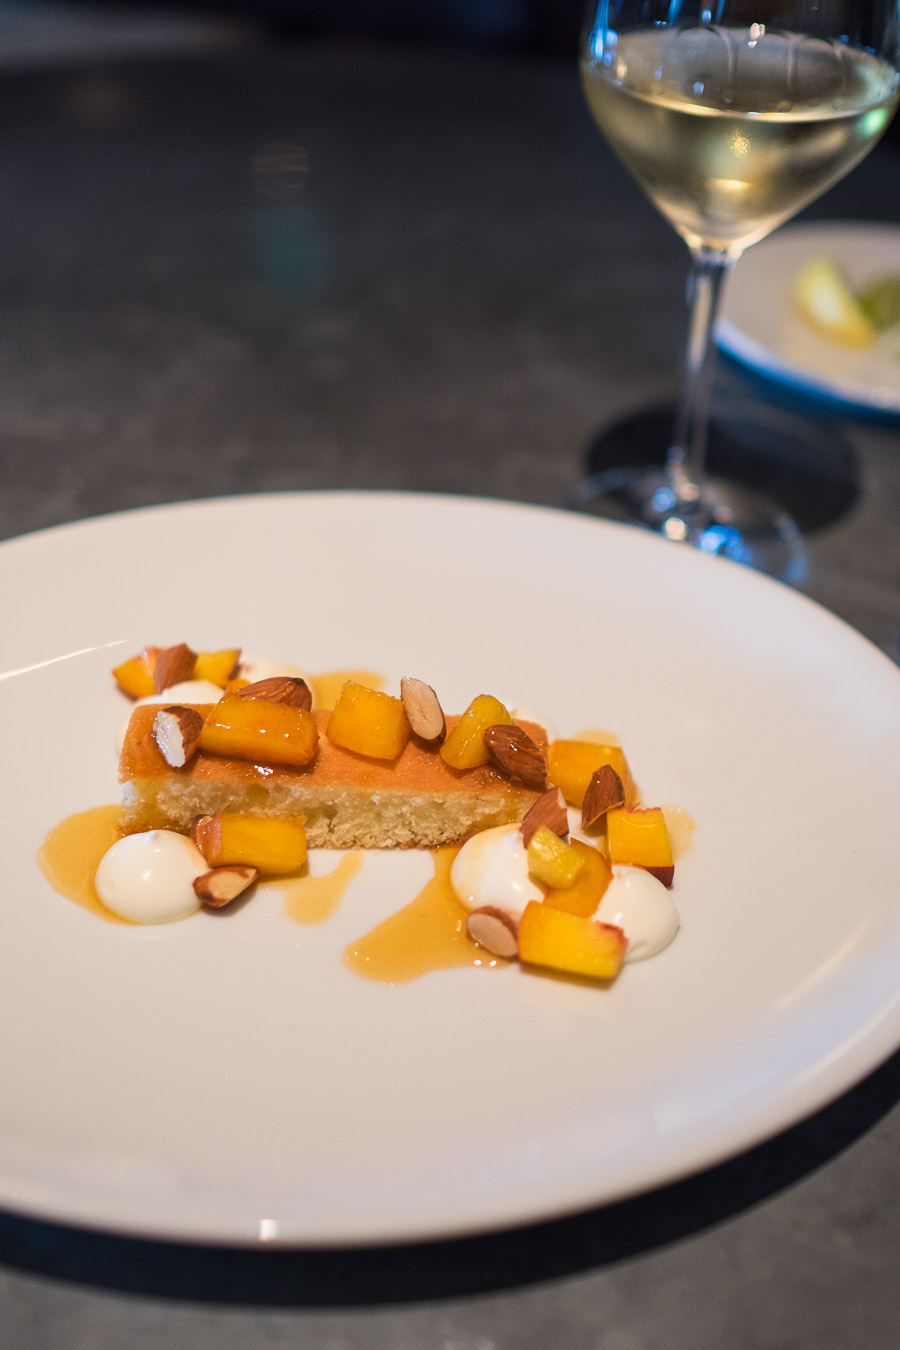 Almond cake, peach caramel and mascarpone - with Pinot Gris 2012